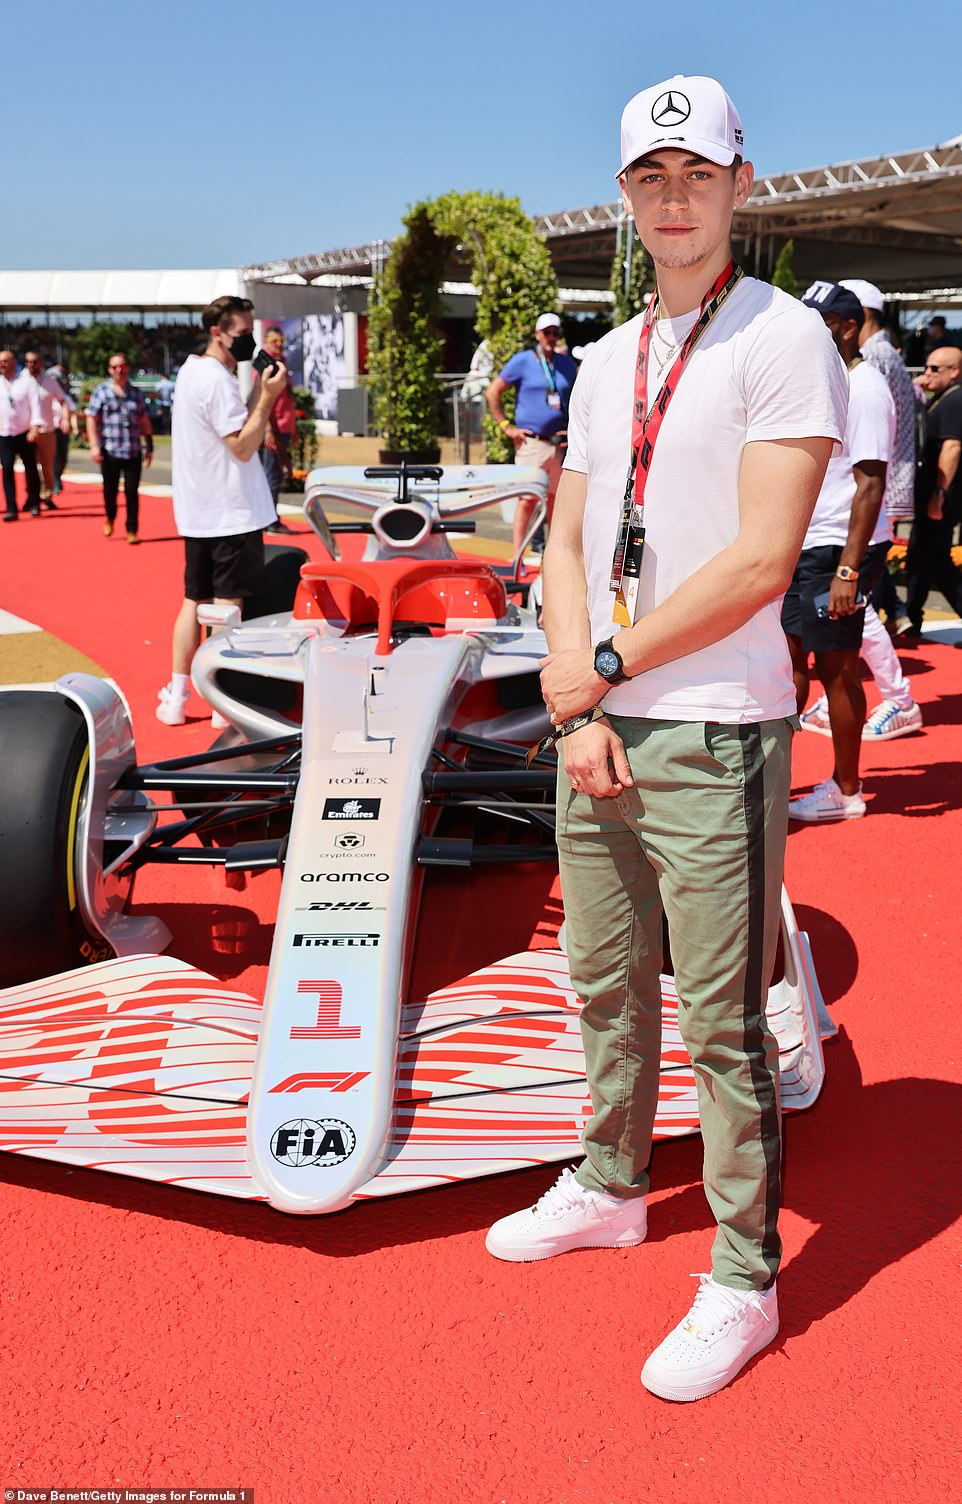 Serious pose: Hero did his best to contain his excitement as he posed next to one of the Formula 1 motors at Silverstone